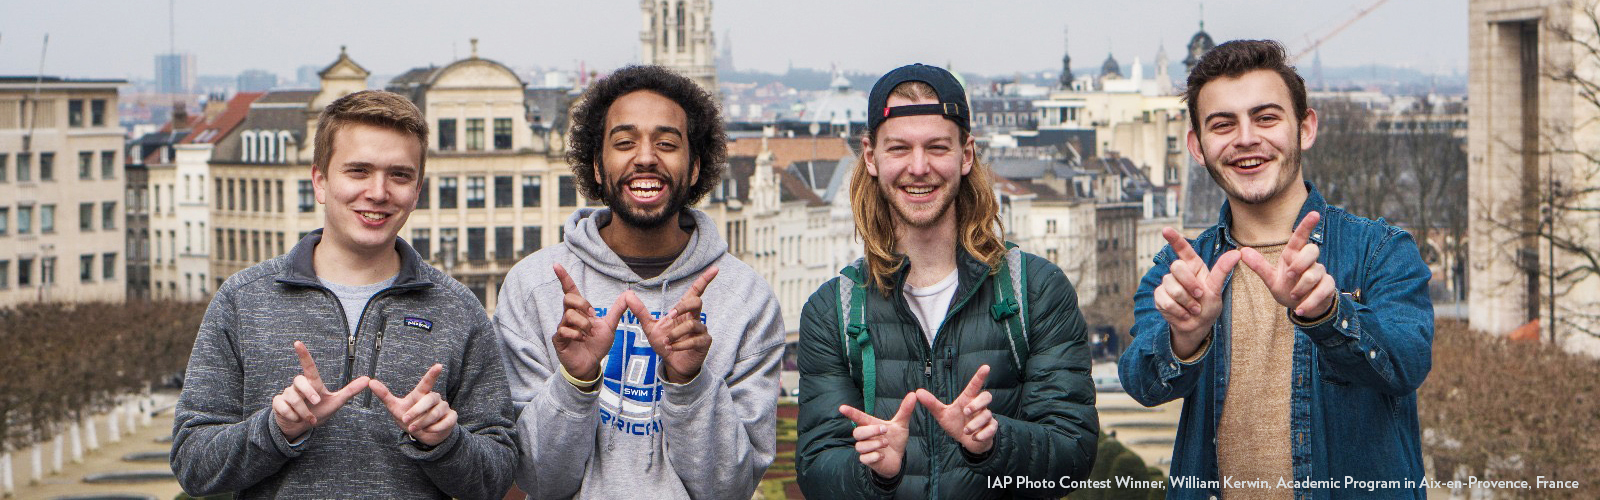 Photo of students in Brussels, Belgium